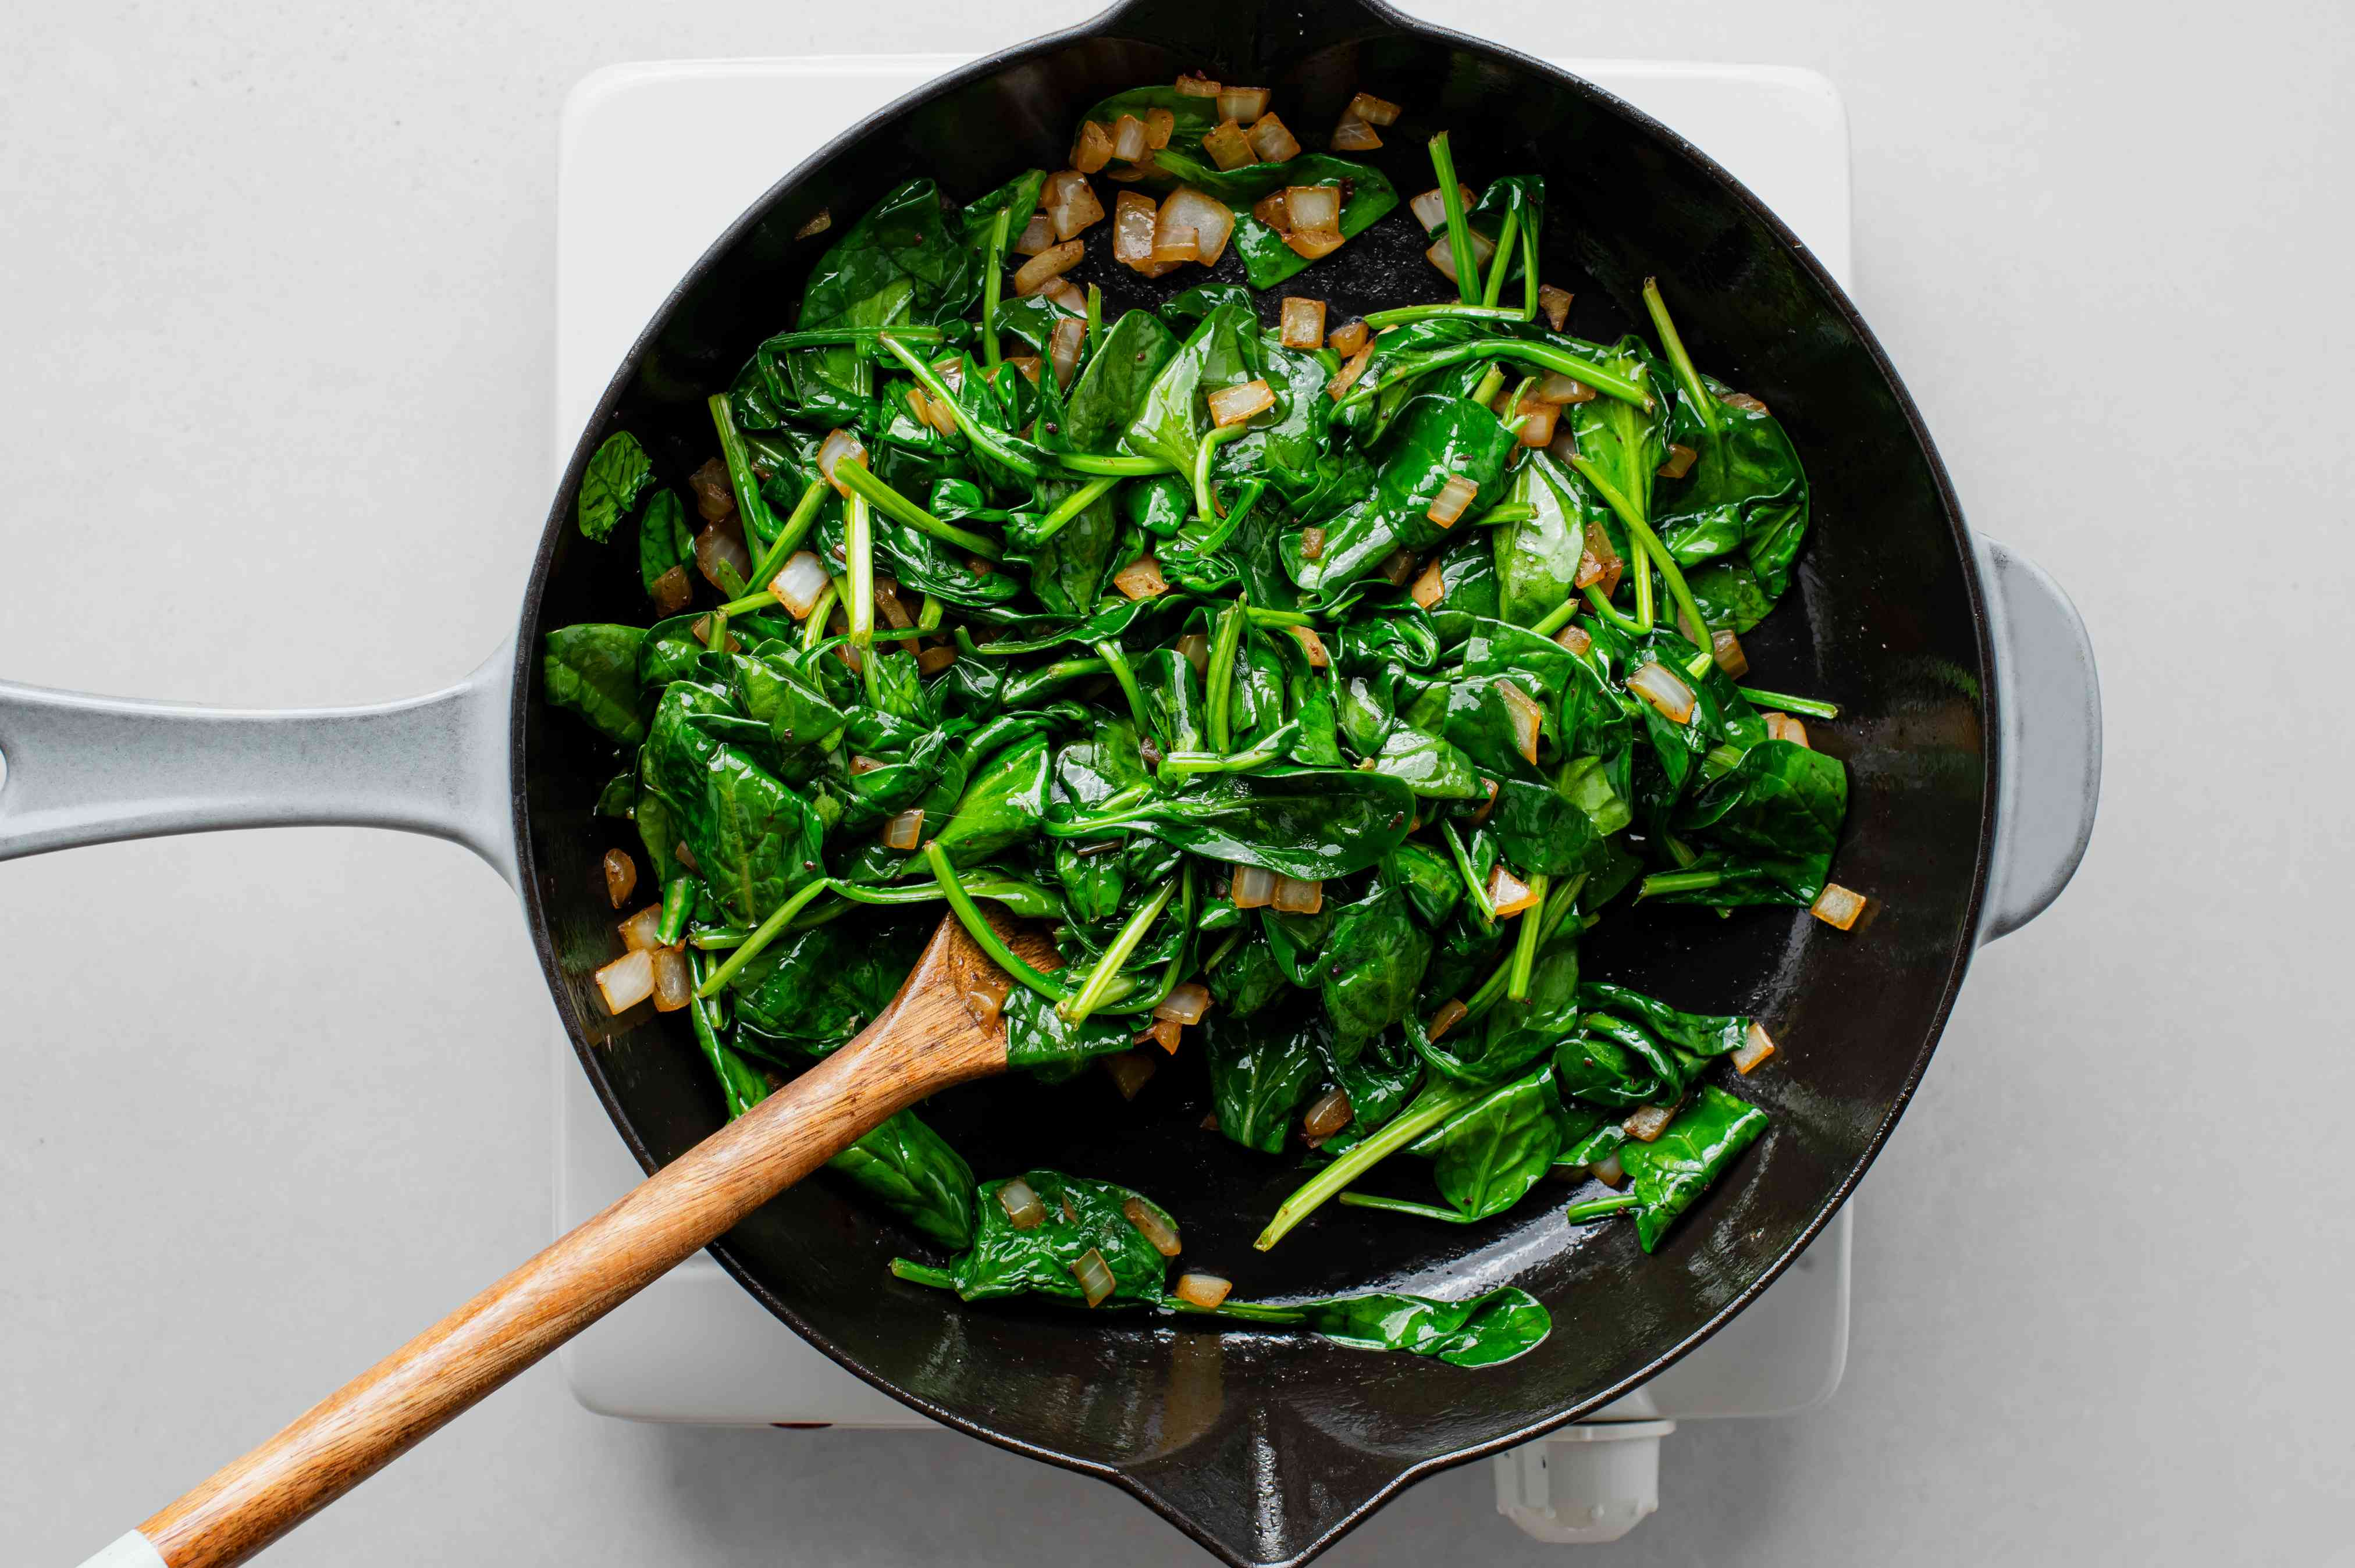 onions and spinach cooking in a skillet